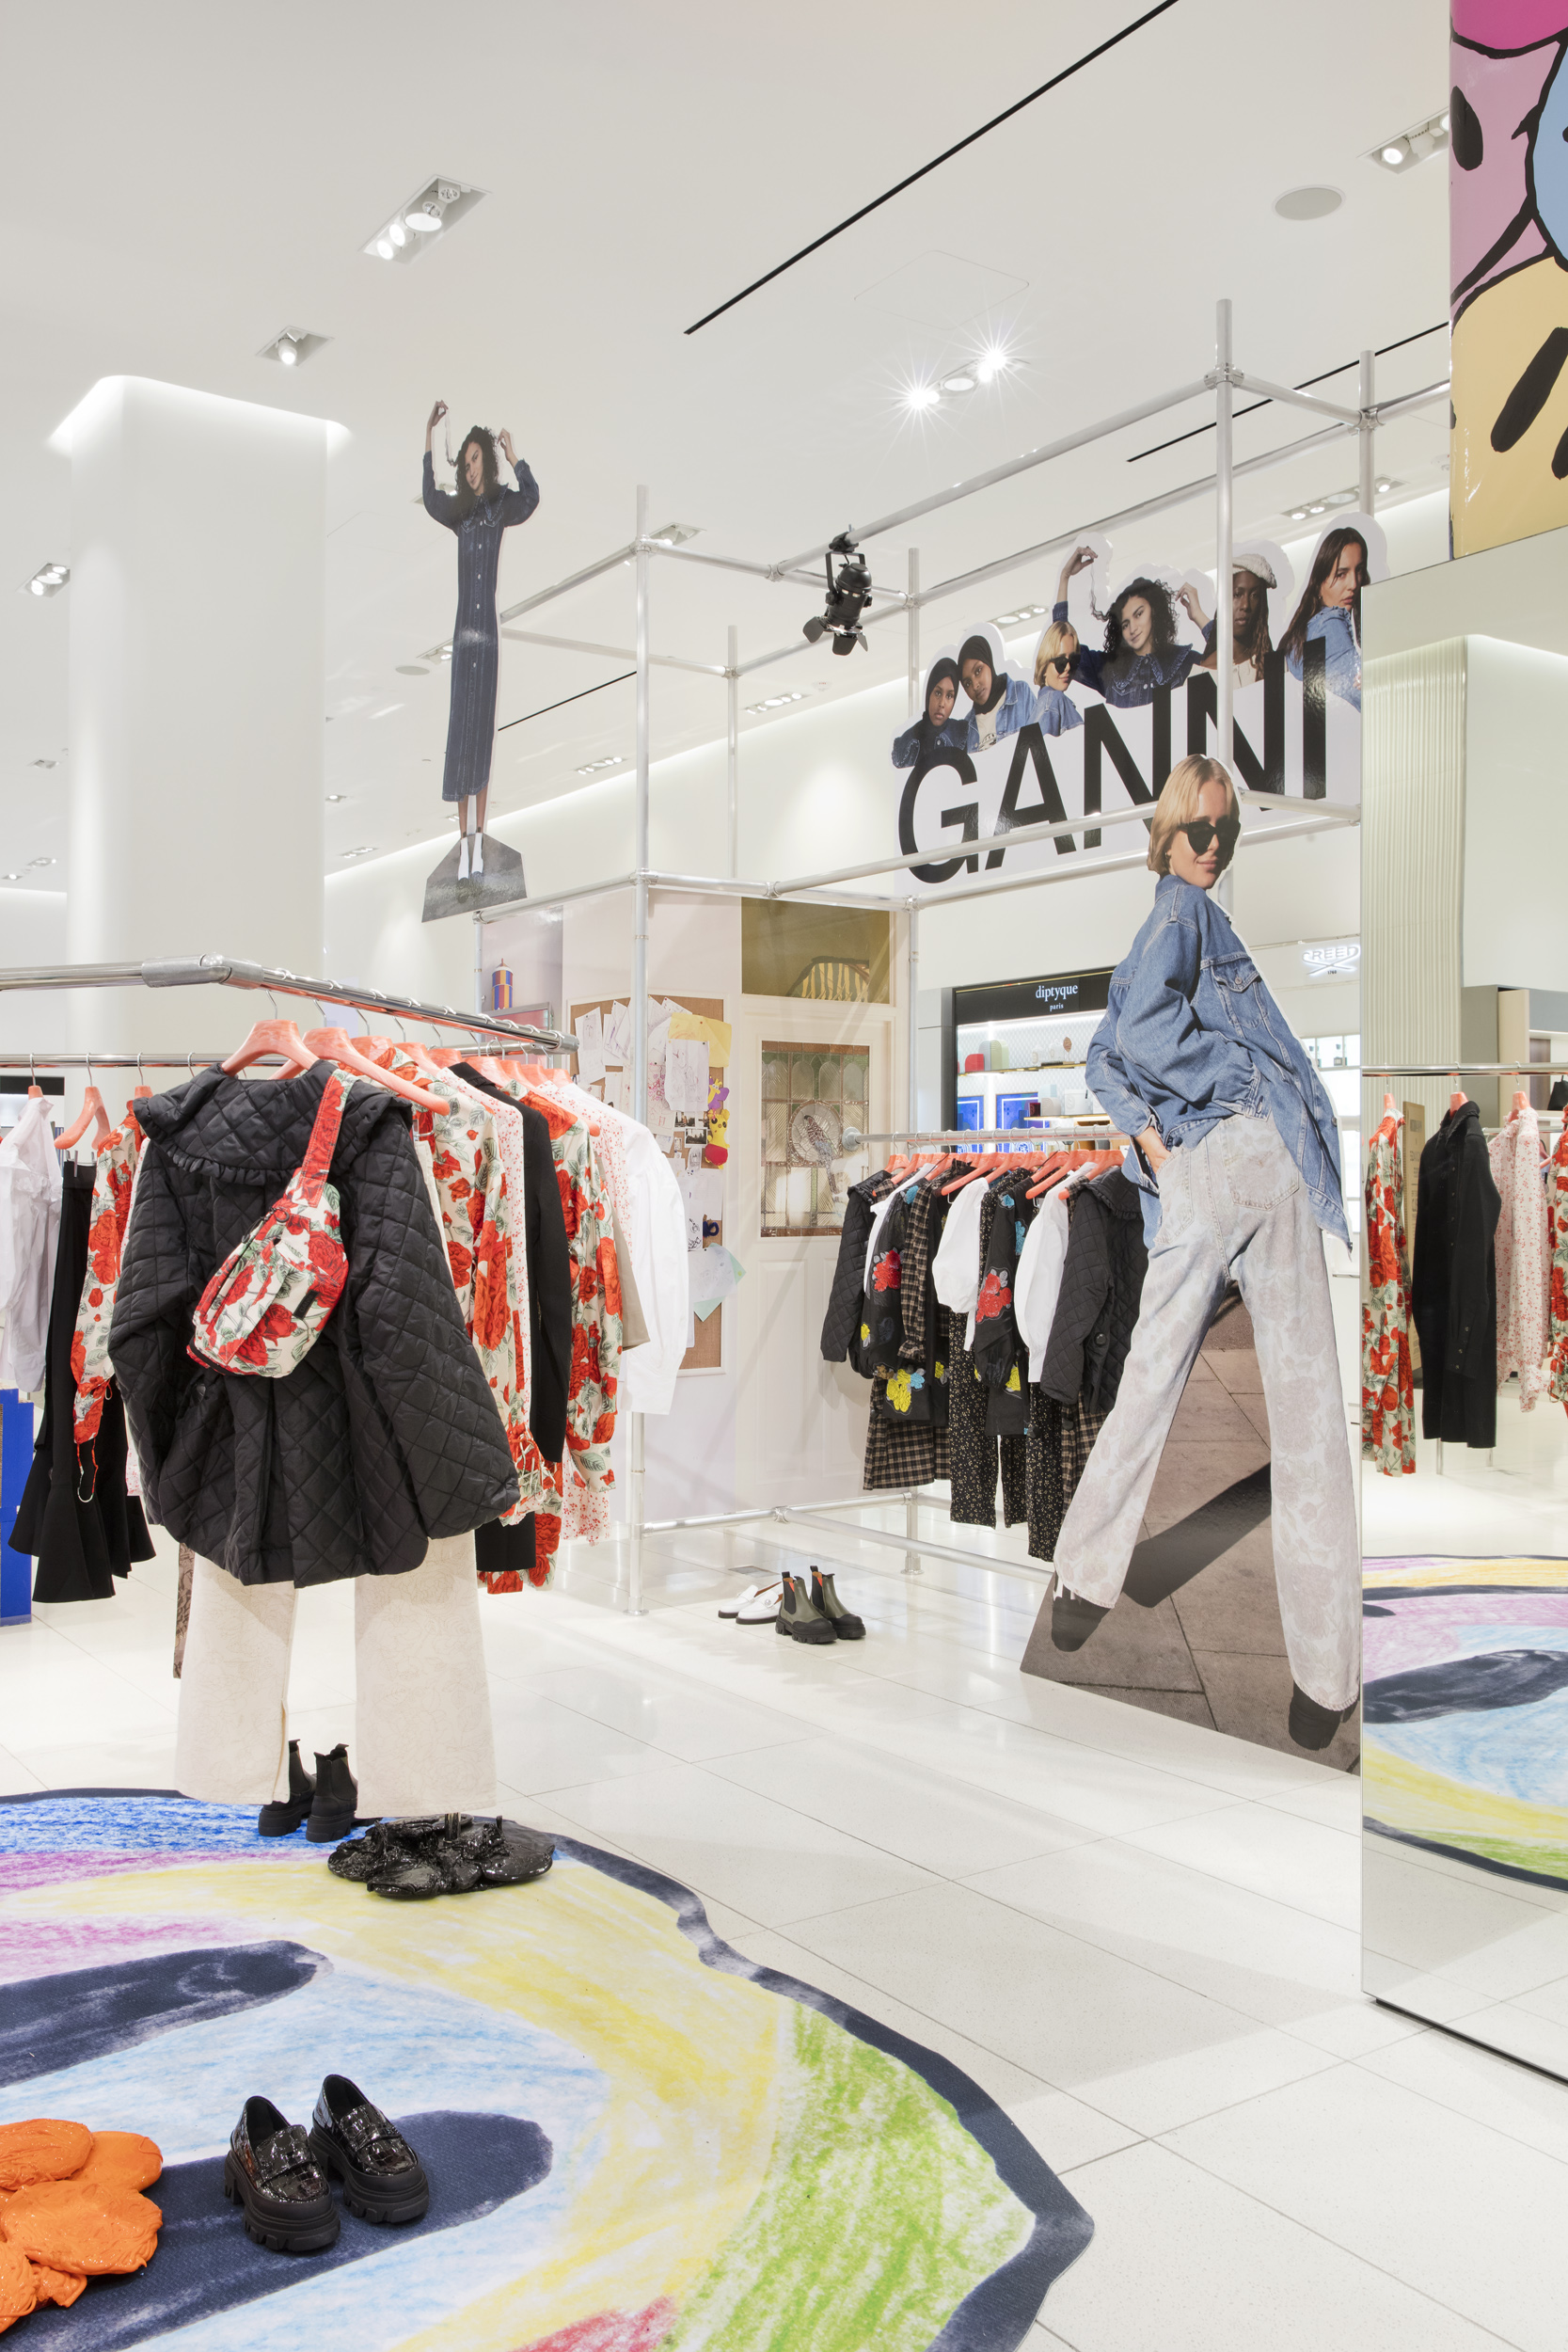 Ganni opened a four-week pop-up shop installation and program of events at Nordstrom's NYC flagship.